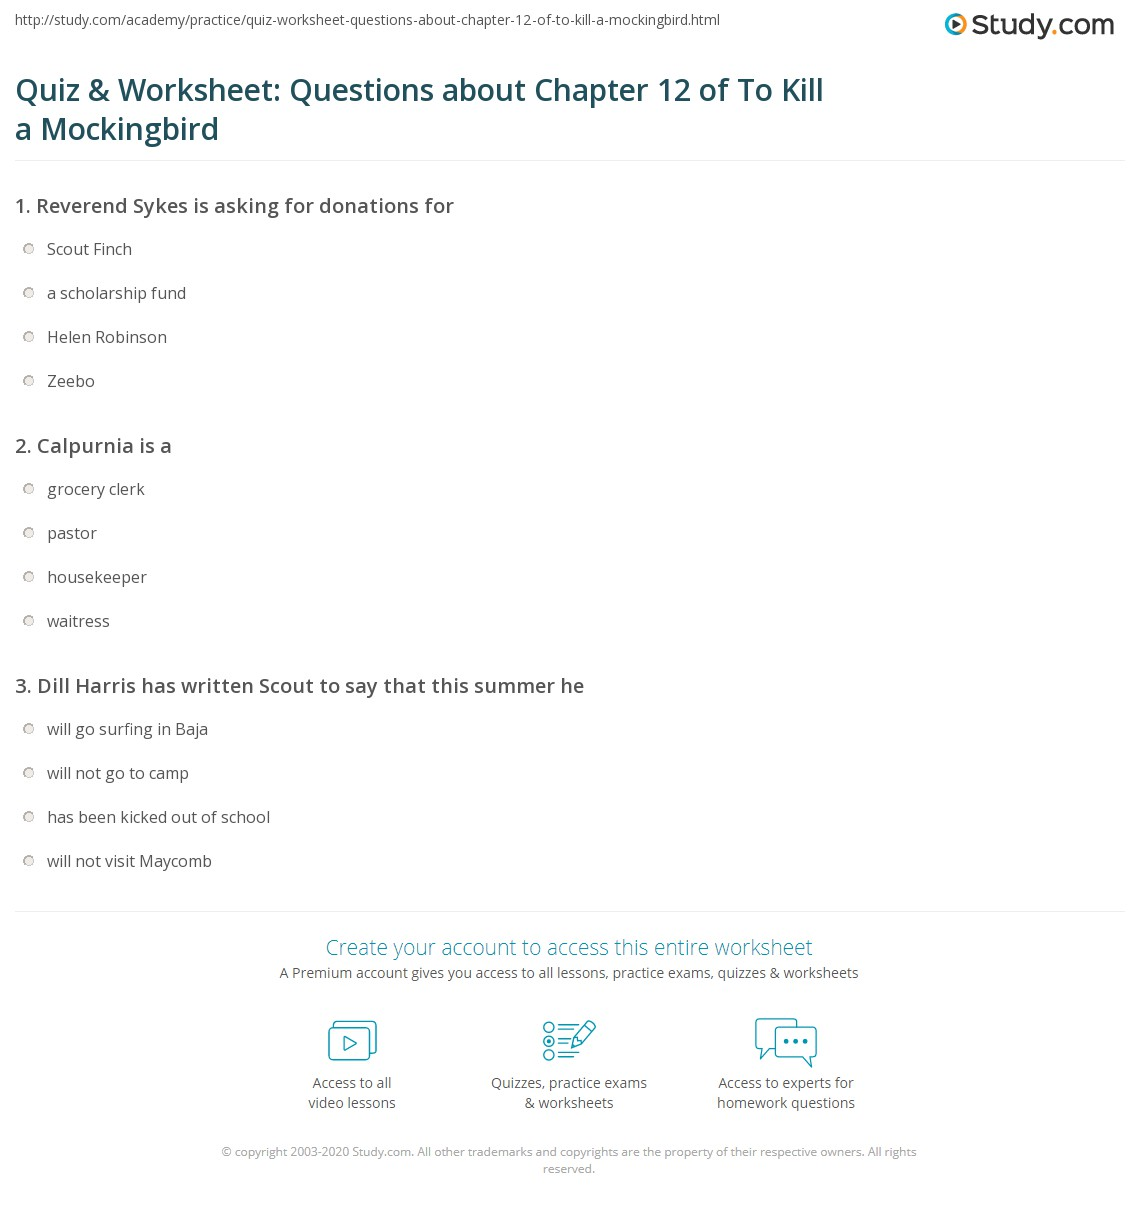 Quiz Worksheet Questions About Chapter 12 Of To Kill A